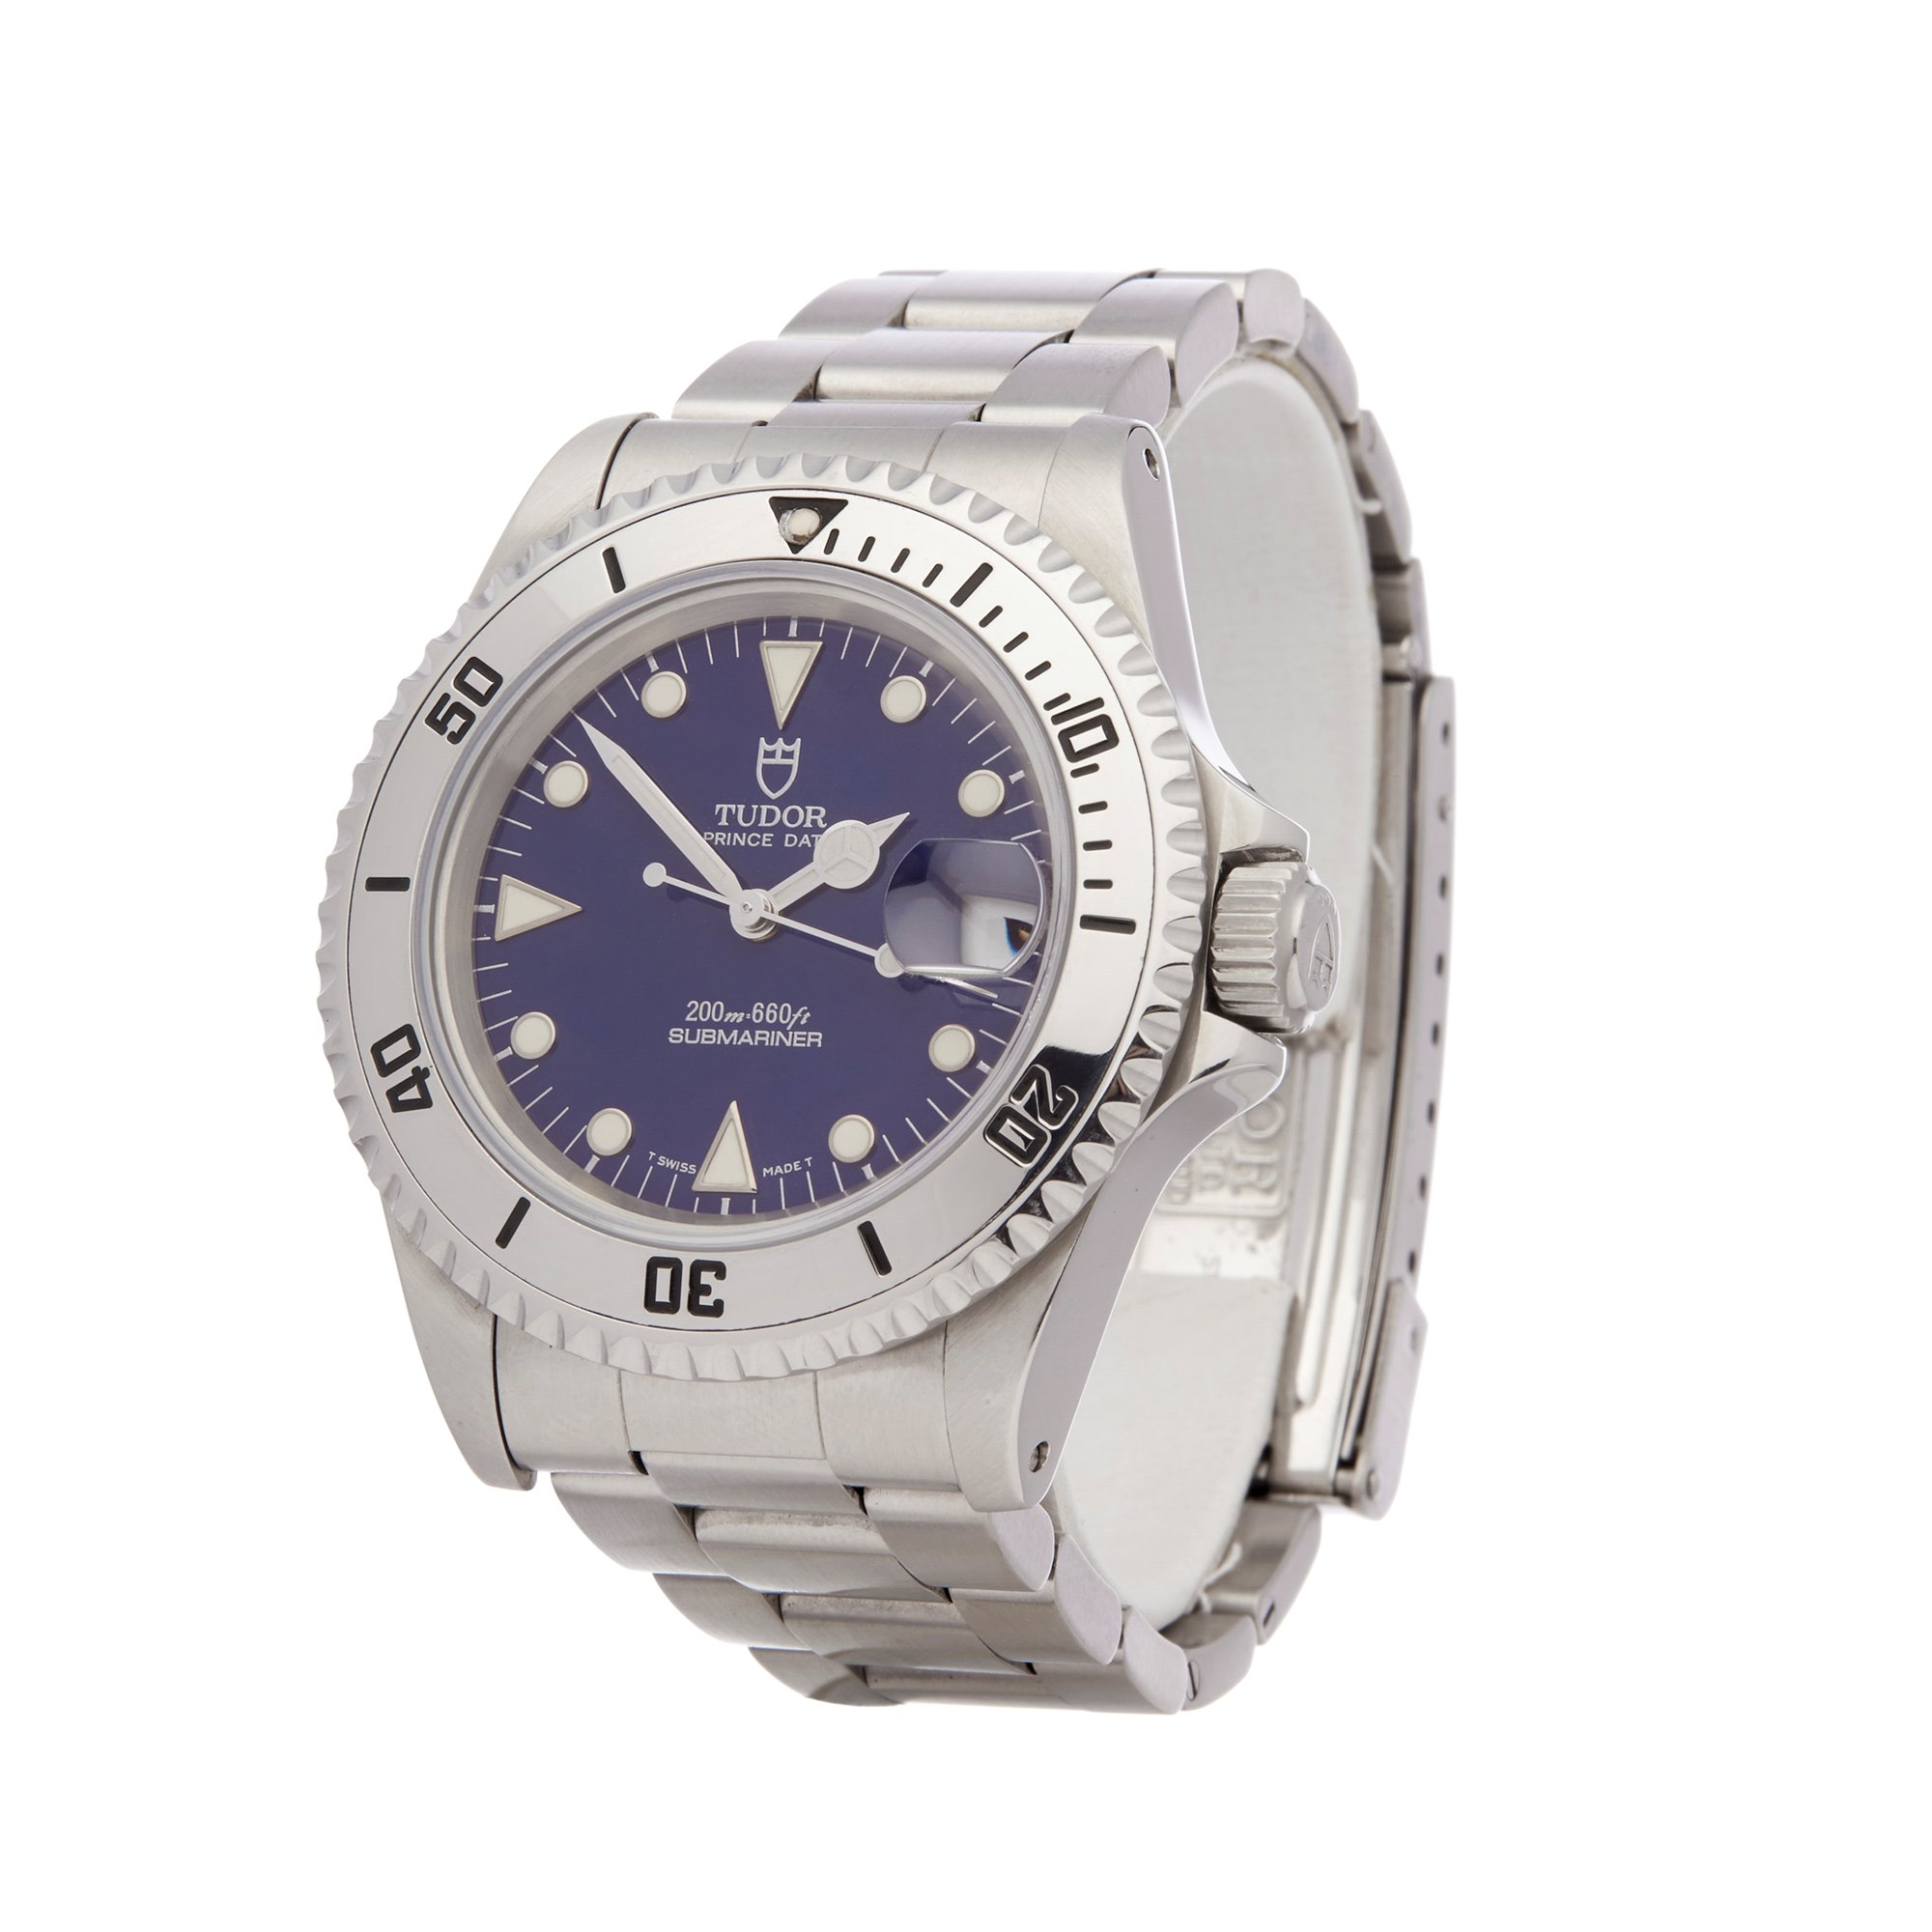 Tudor Submariner Stainless Steel 79190